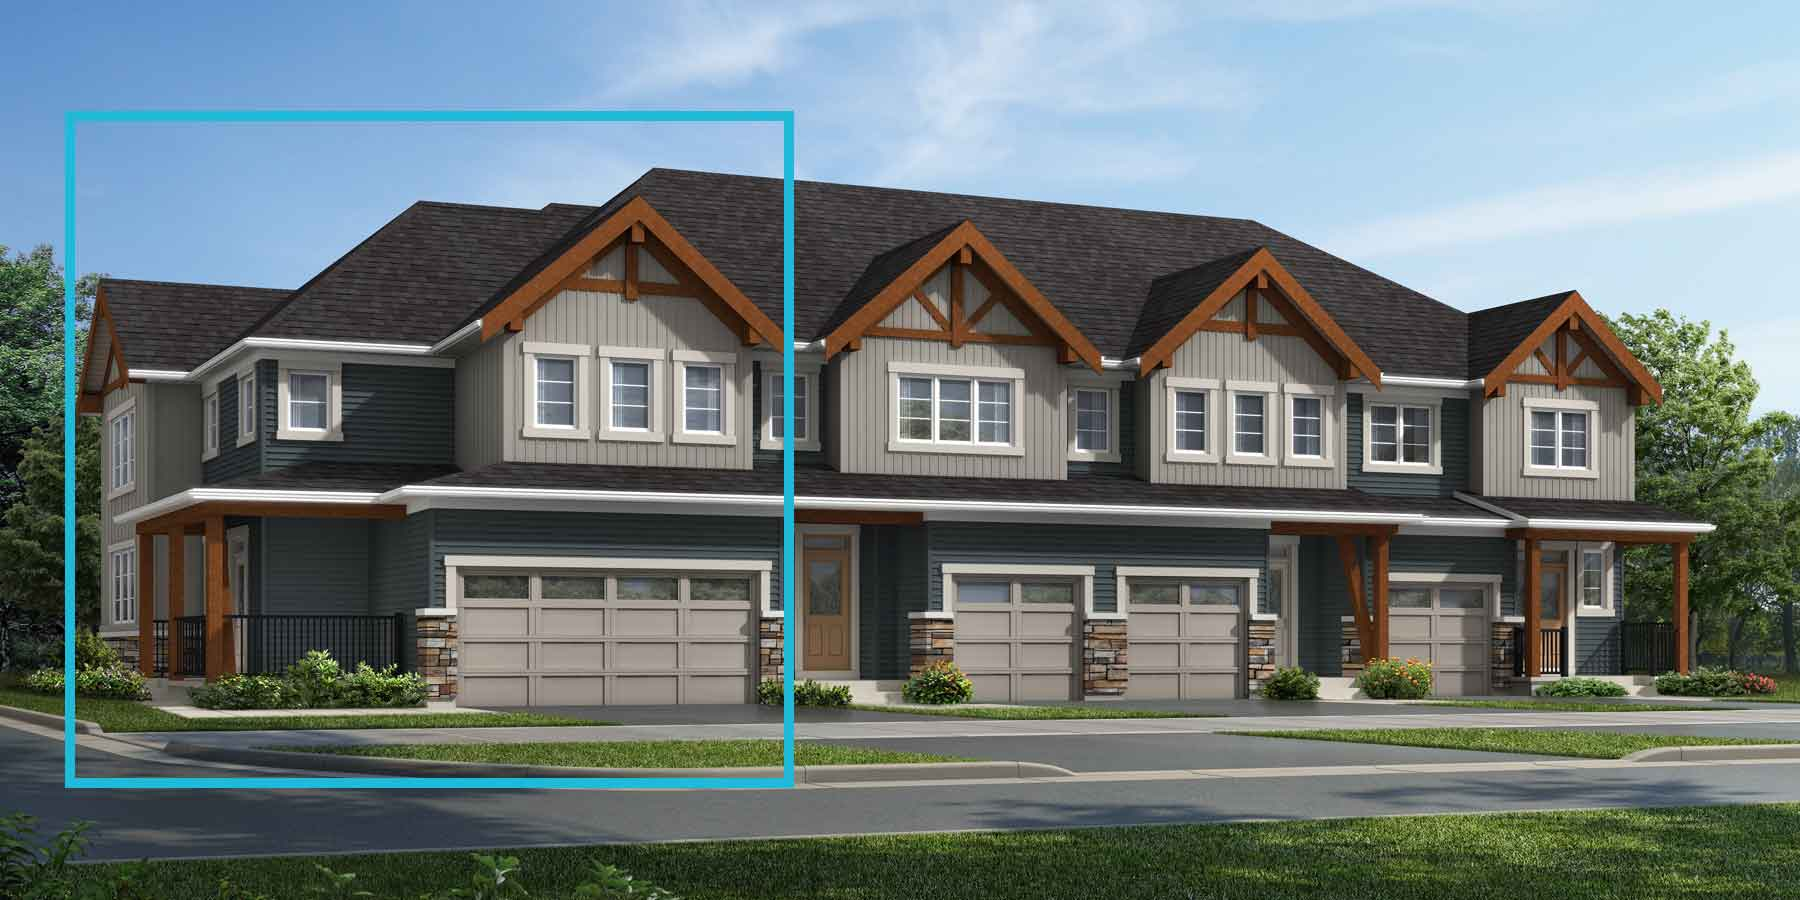 Apollo Corner Plan TownHomes at Carrington in Calgary Alberta by Mattamy Homes